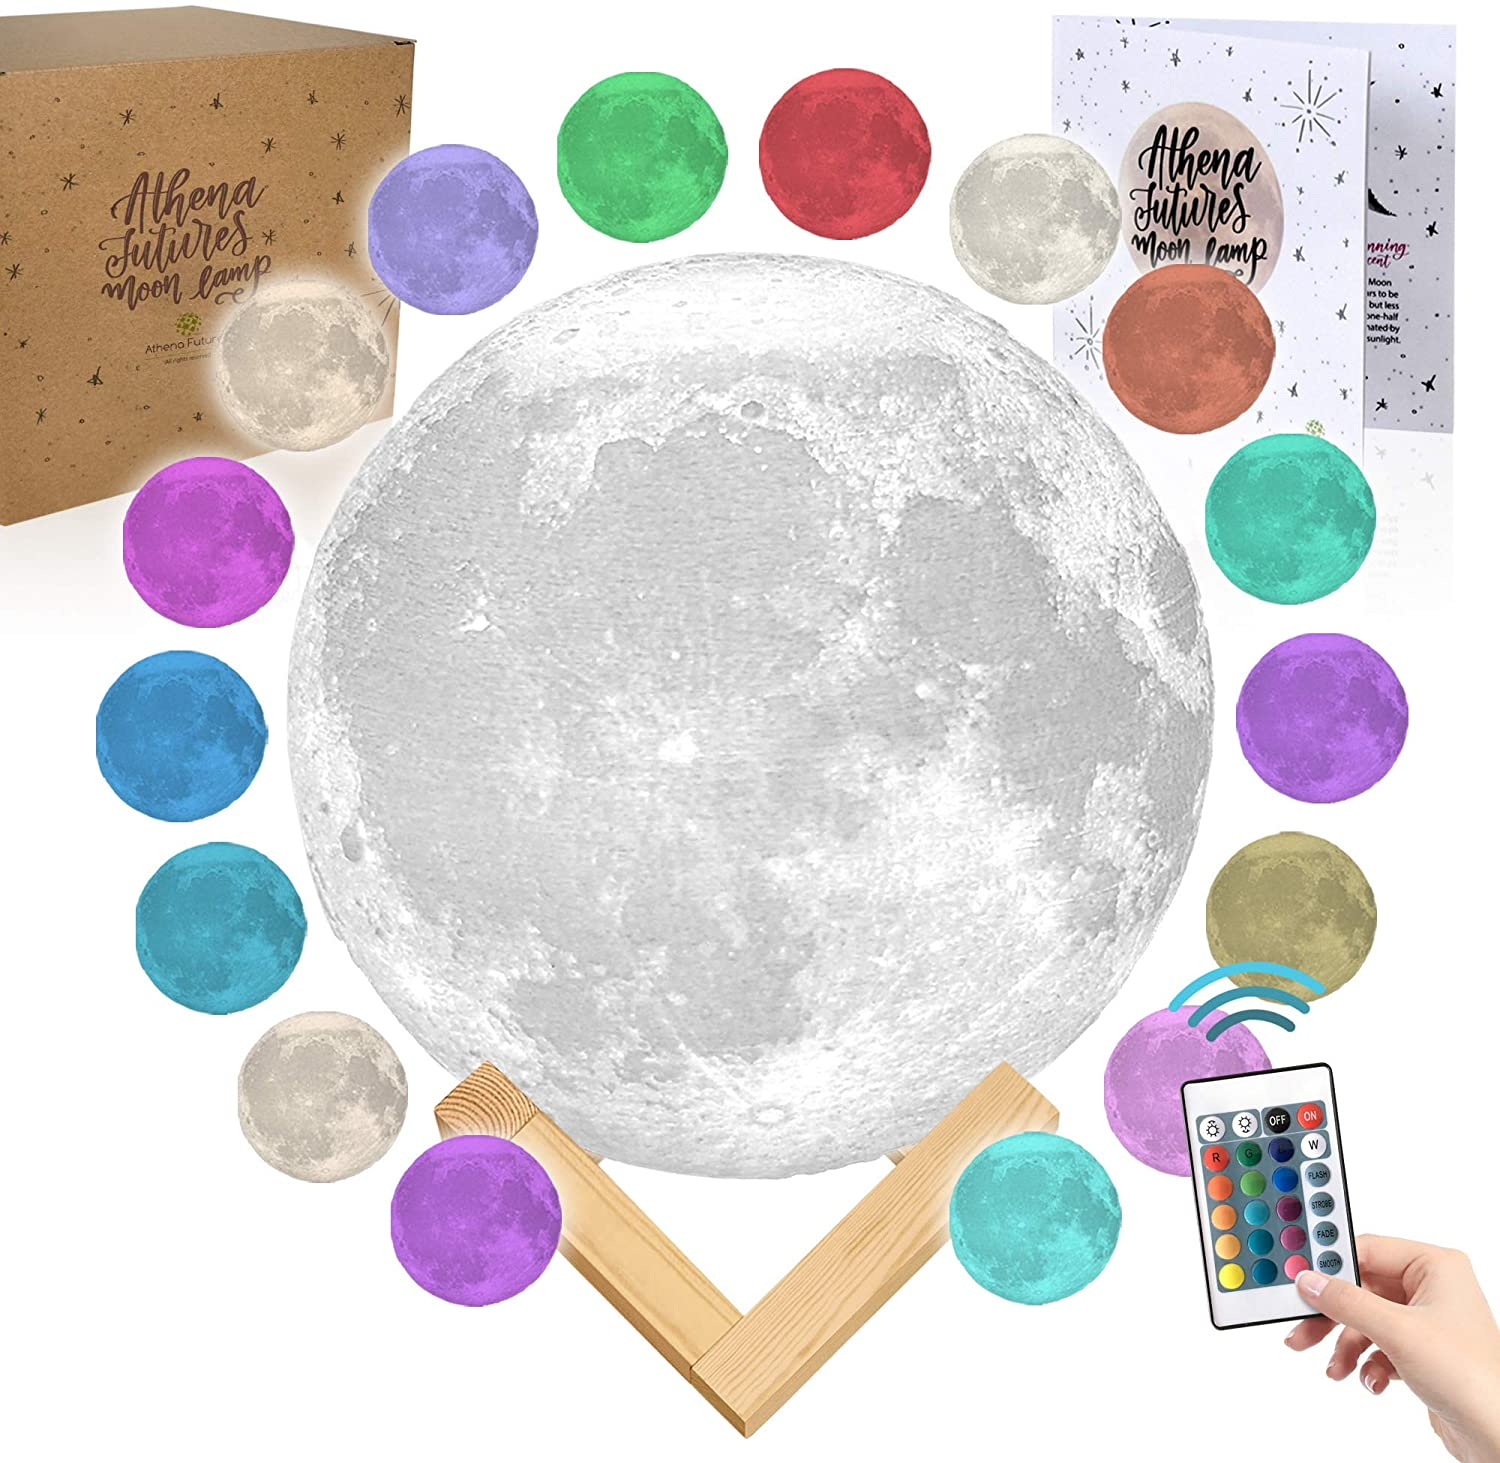 Moon Lamp with Timer with Colors - Moon Light 3D Moon Lamp - Seamless - Moon Night Light with Stand - Mood, Globe, Cool Lamp, Gift, with Wooden Stand, Gift Box, Moonlight LED (7.1 inch)